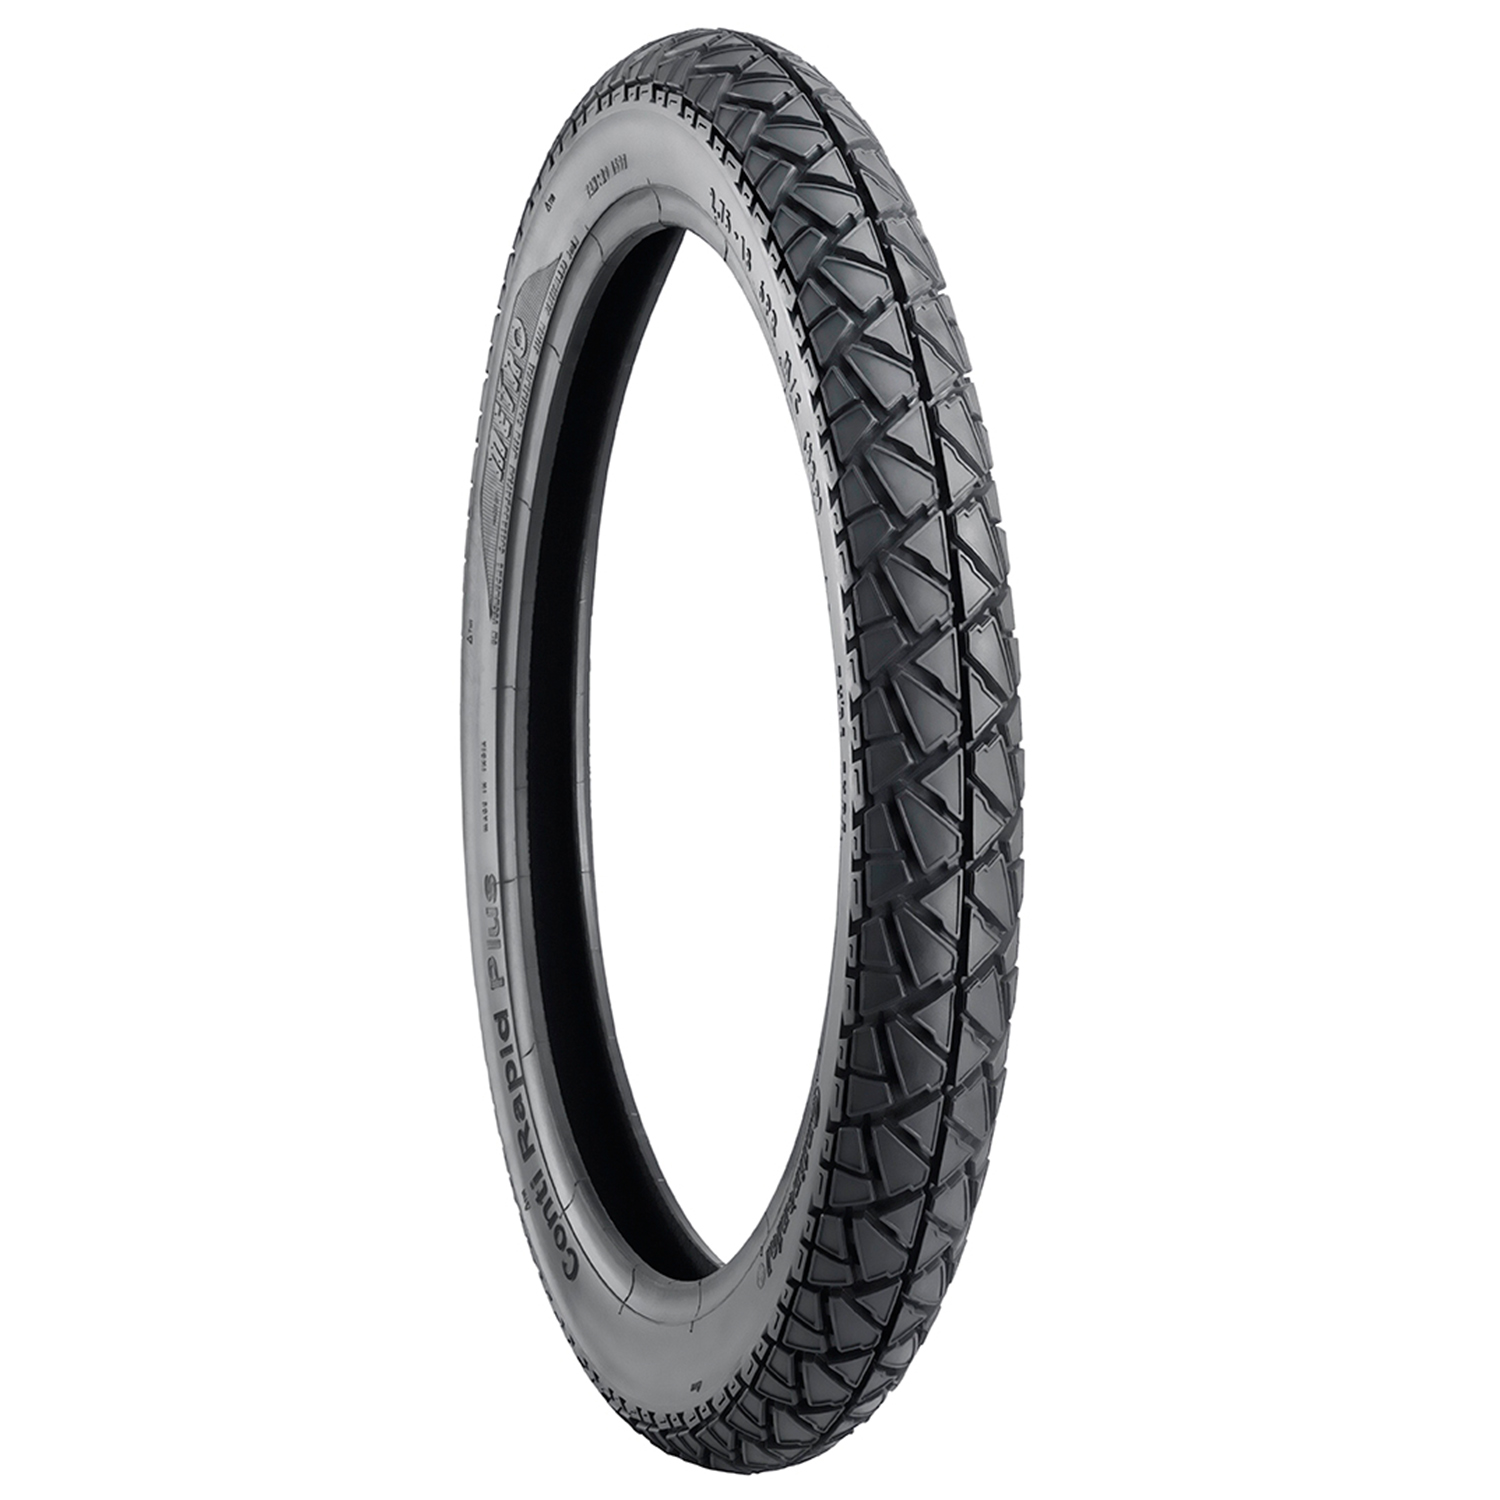 Metro CONTI RAPID PLUS 3.00 18 Requires Tube Rear Two-Wheeler Tyre